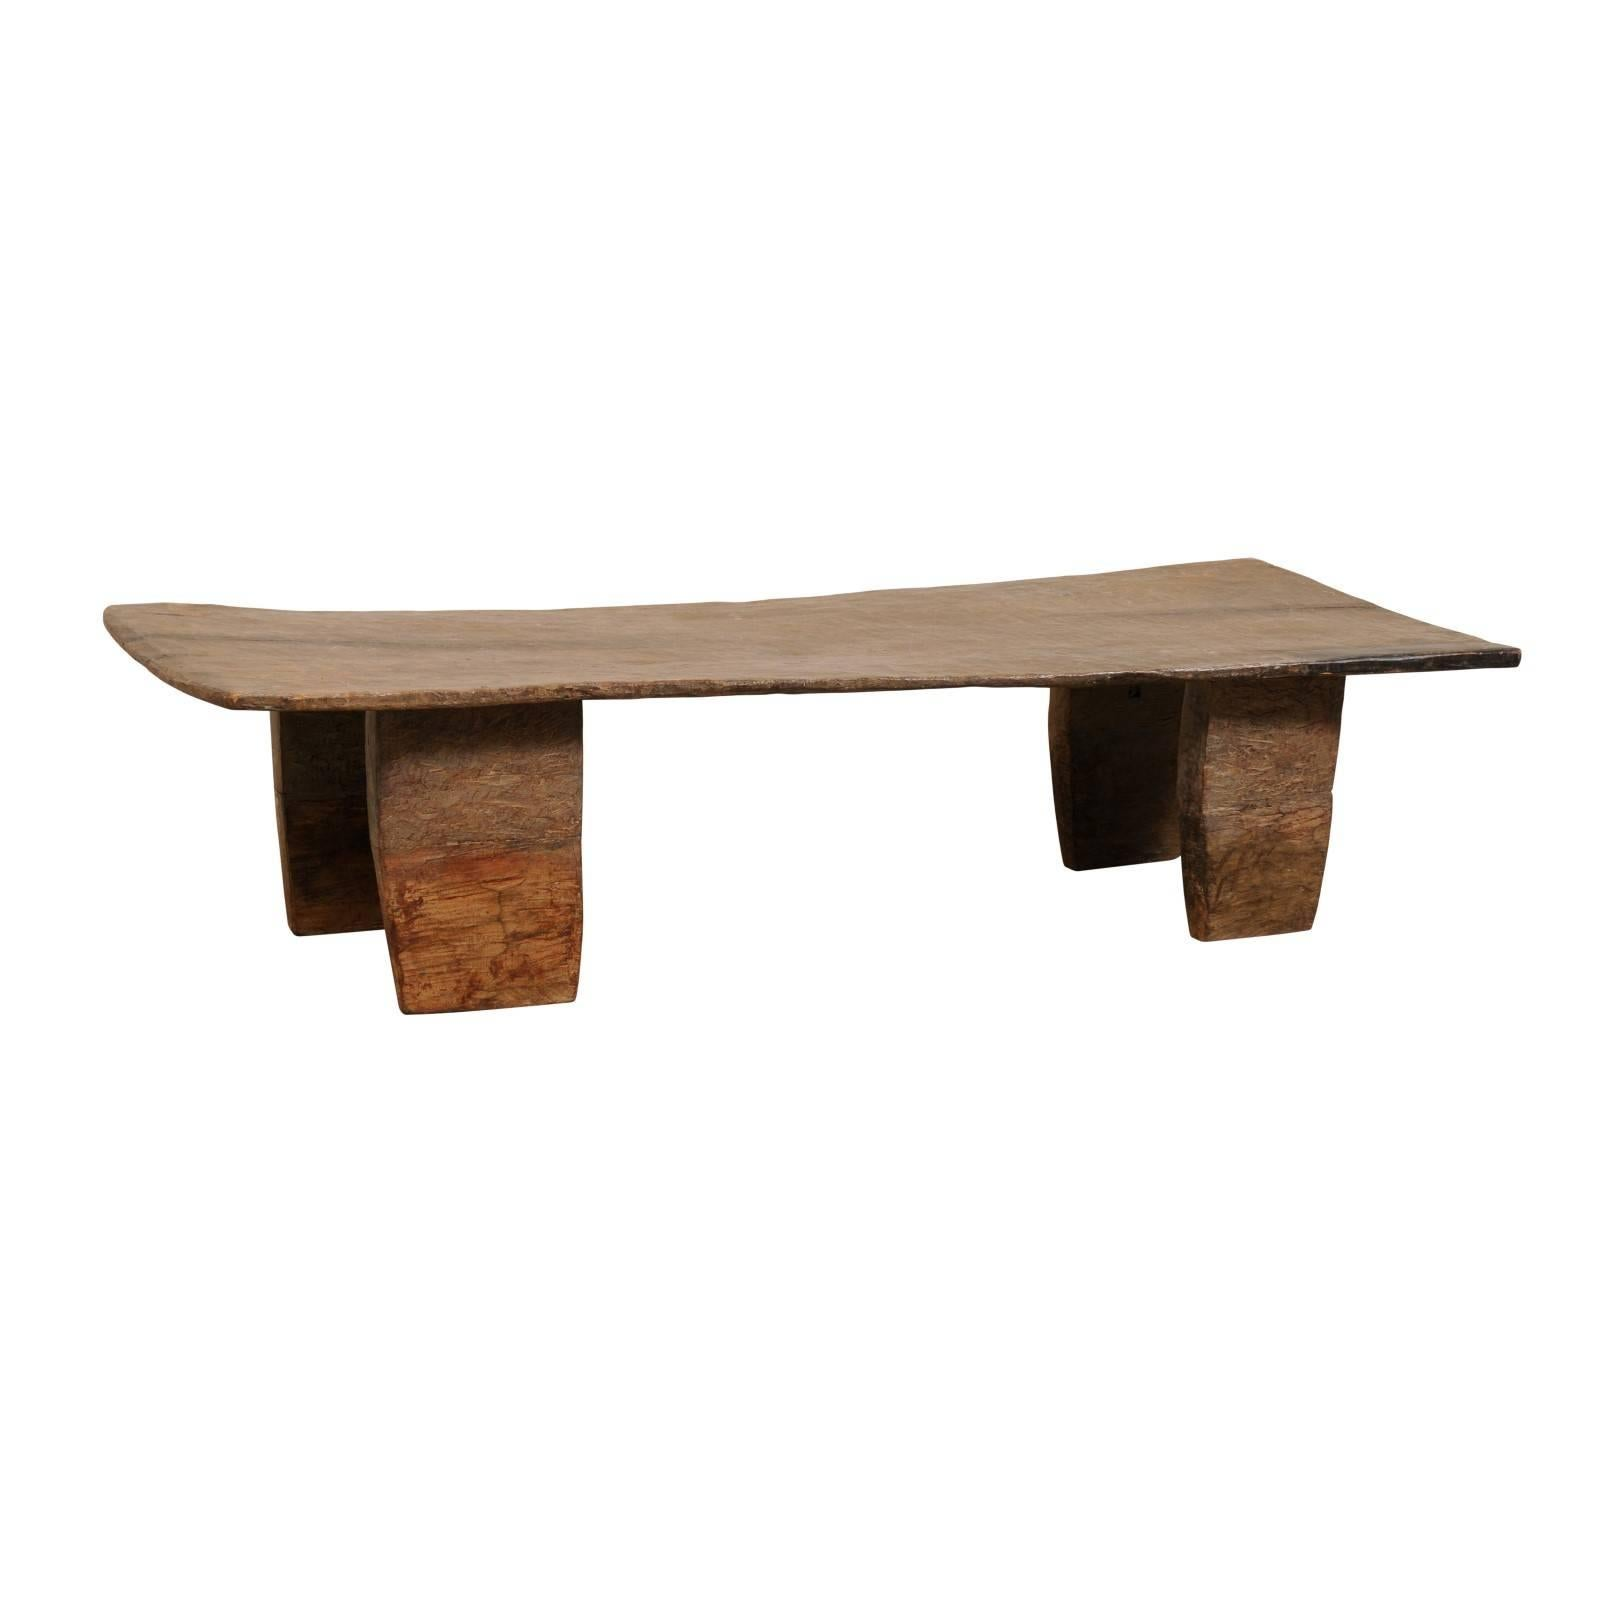 Superieur Beautifully Rustic Primitive Naga Wood Coffee Table, Late 19th Century,  India For Sale